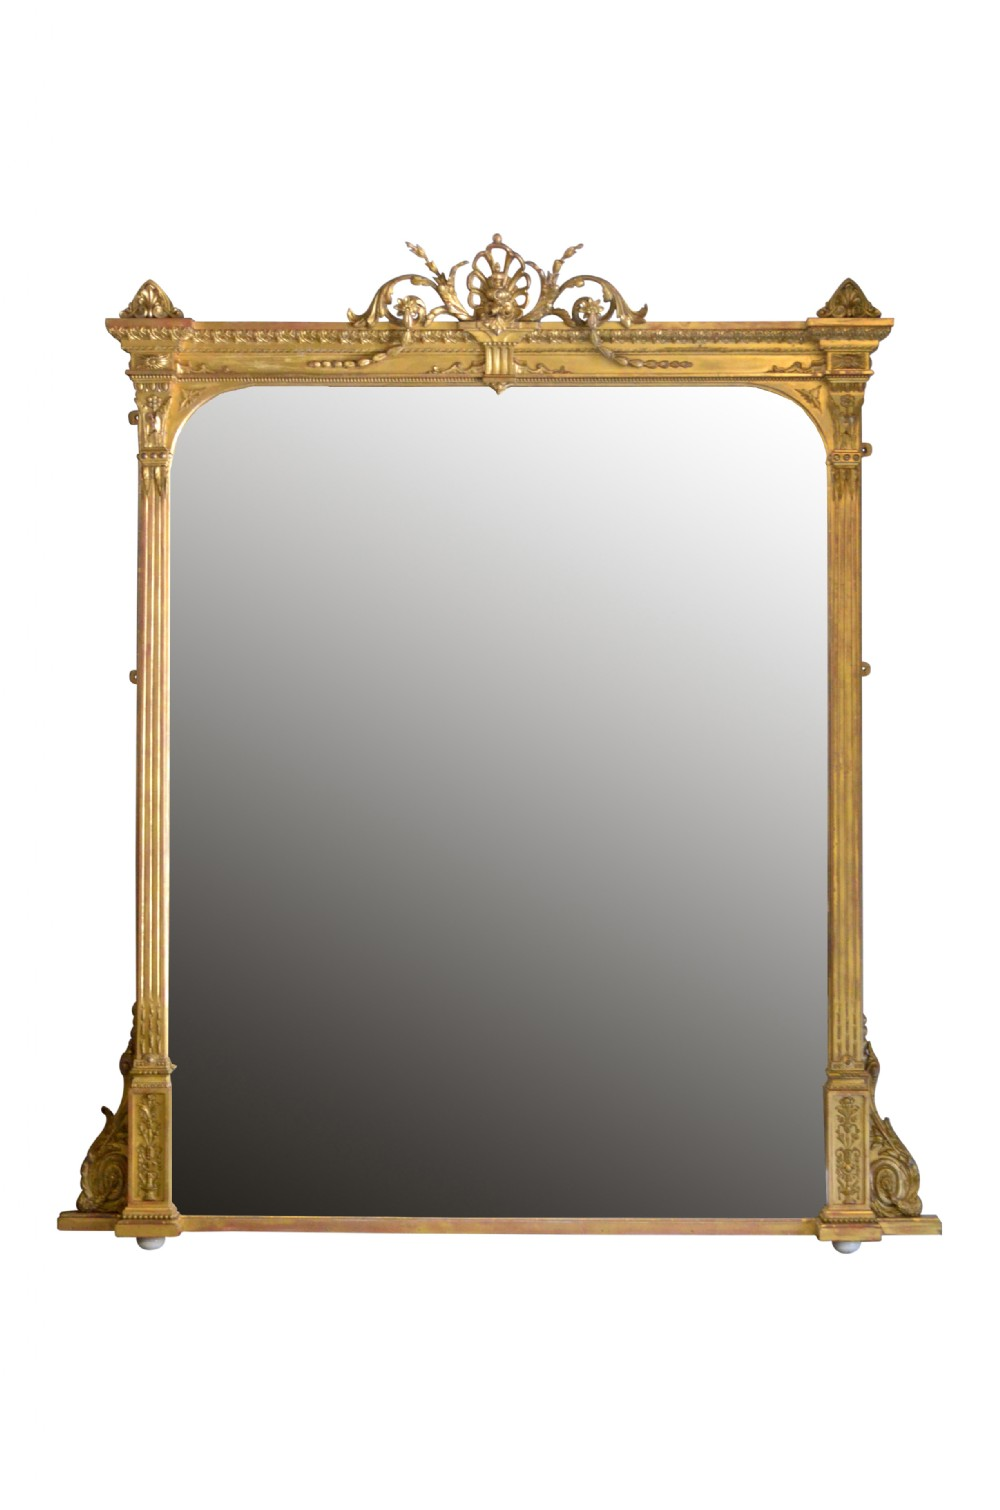 exceptional english giltwood mirror of large proportions